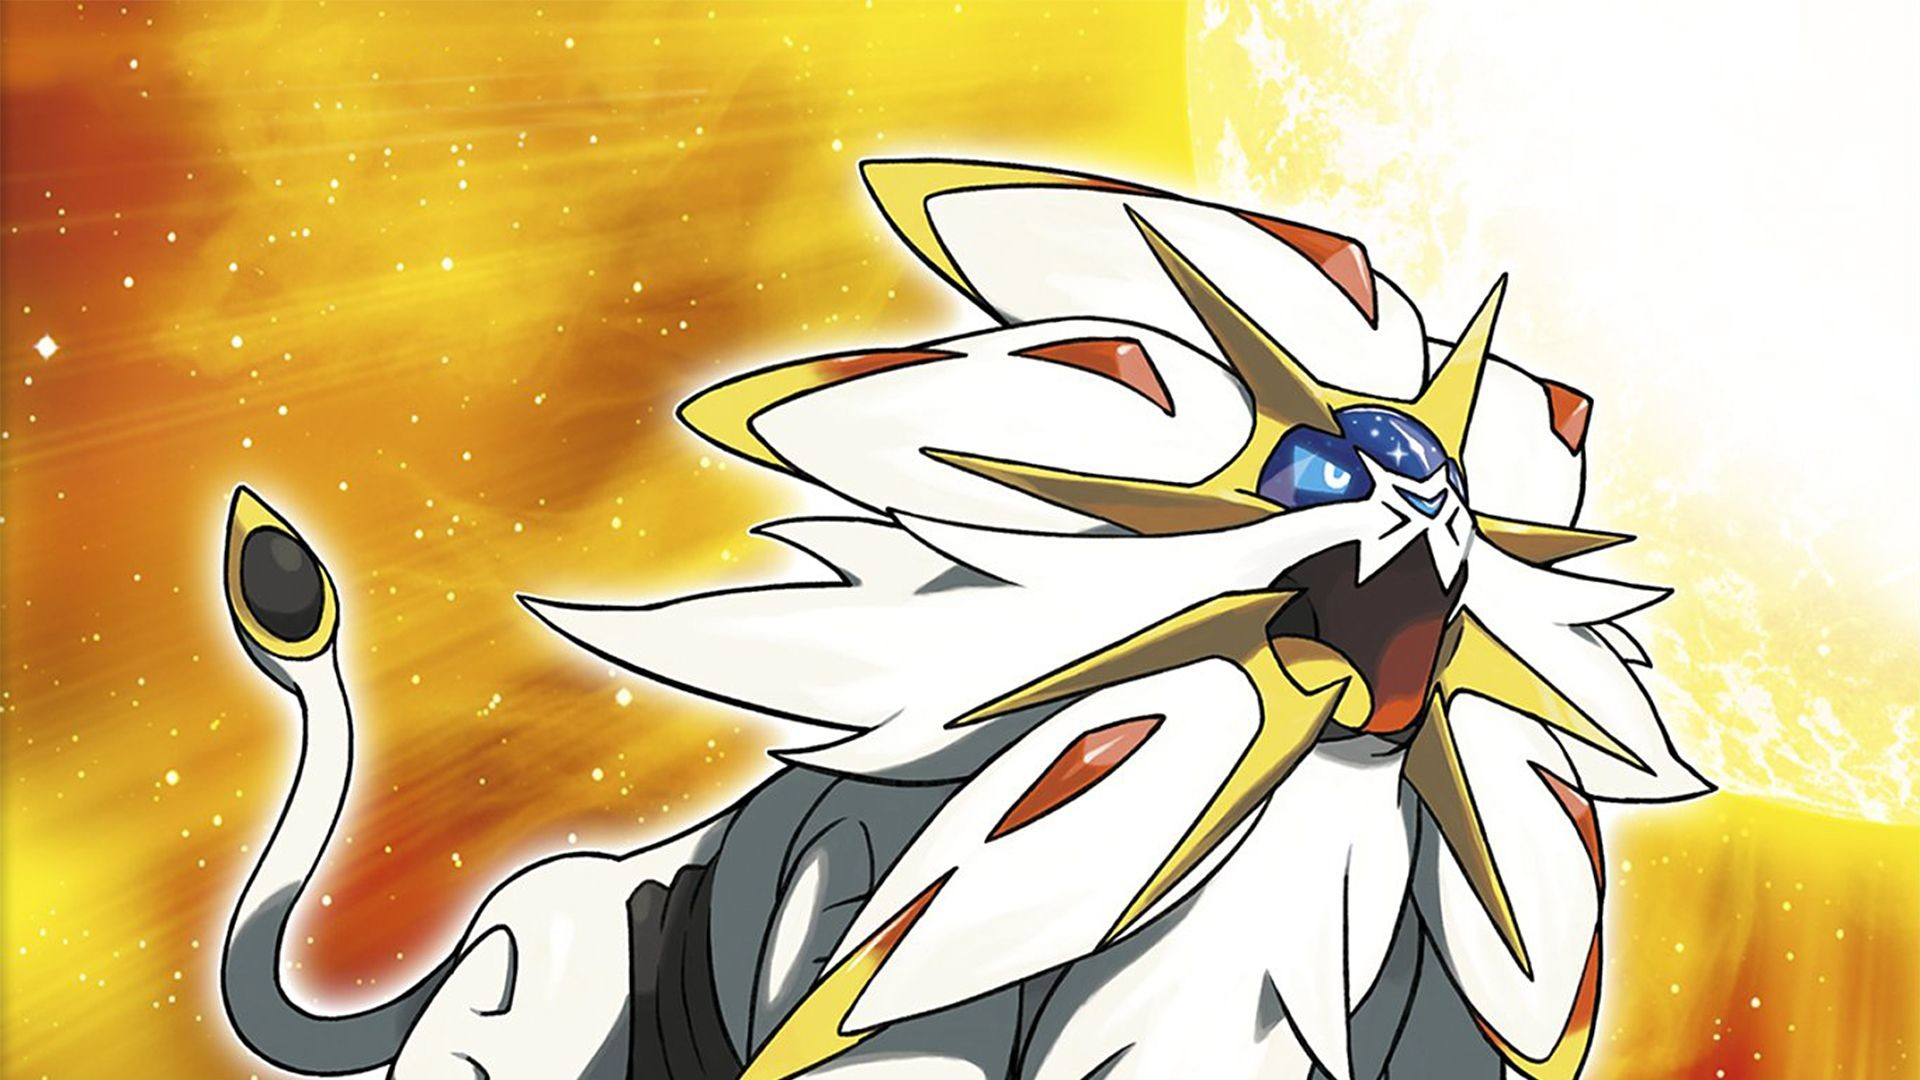 Res: 1920x1080, Sun/Moon Legendary Wallpapers (Official Art based) <> Need #iPhone